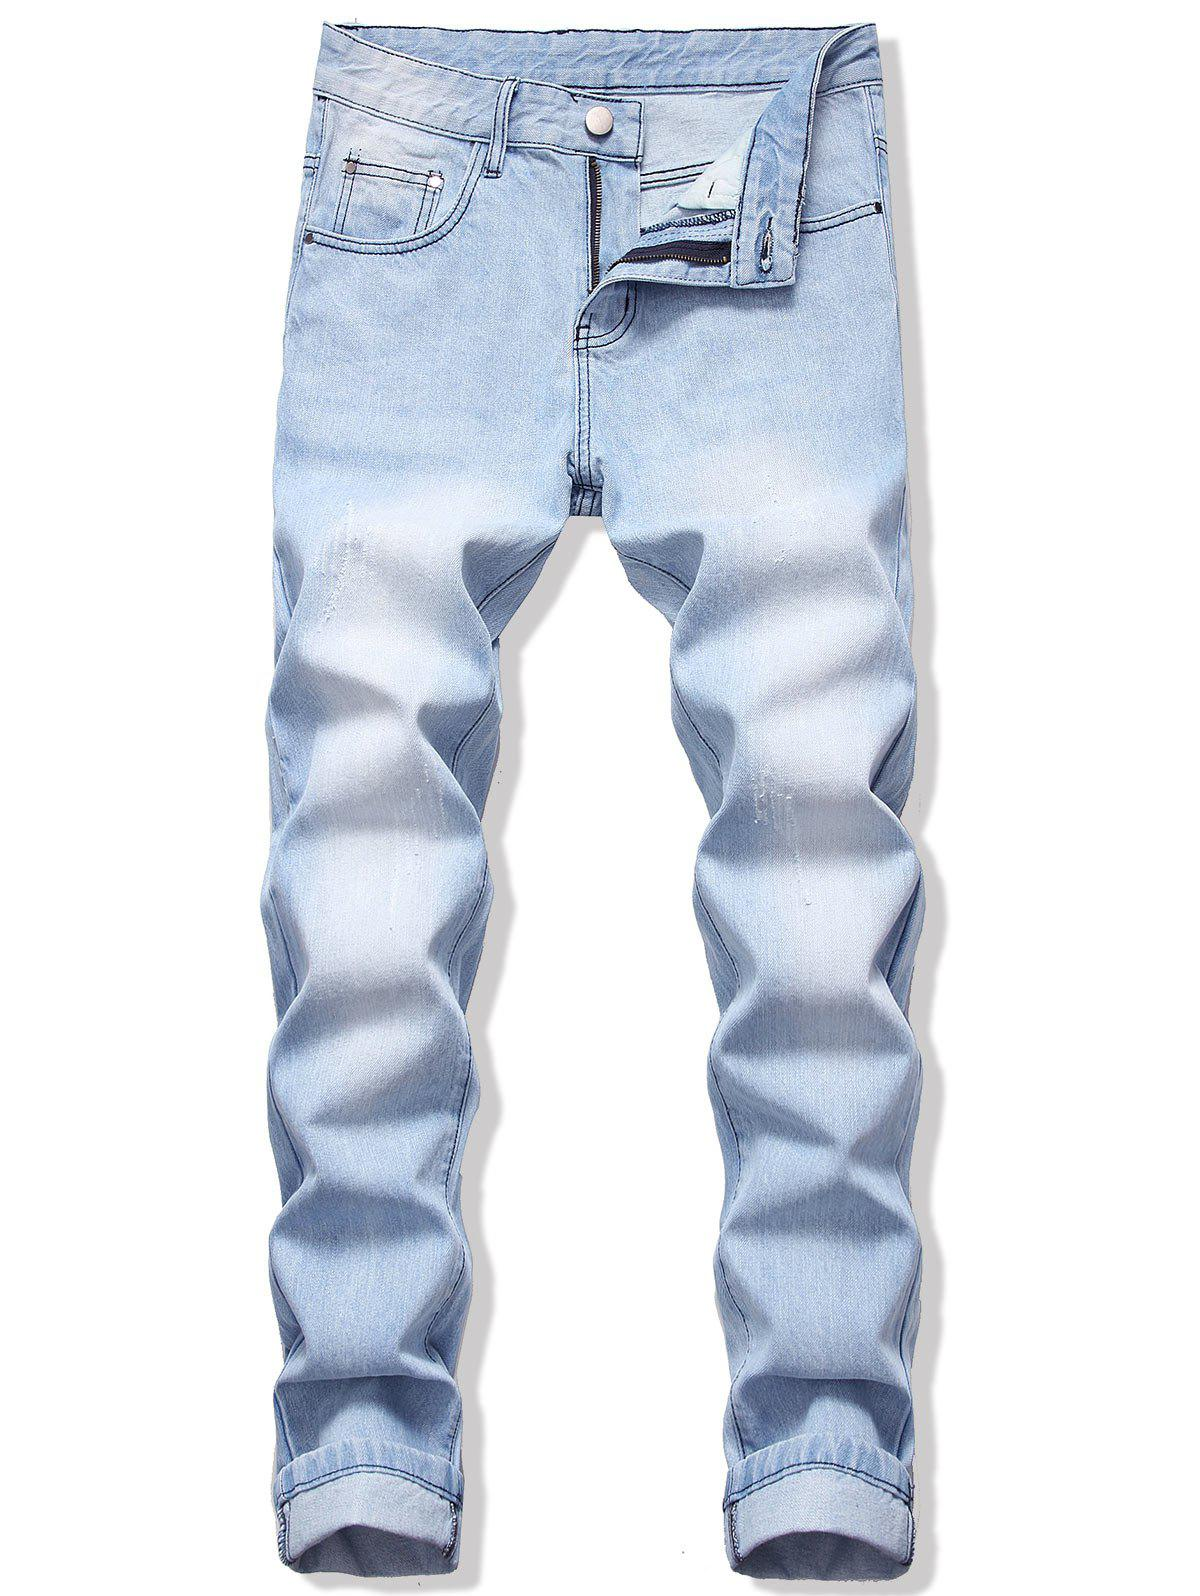 Long Straight Scratch Casual Jeans - LIGHT BLUE 42